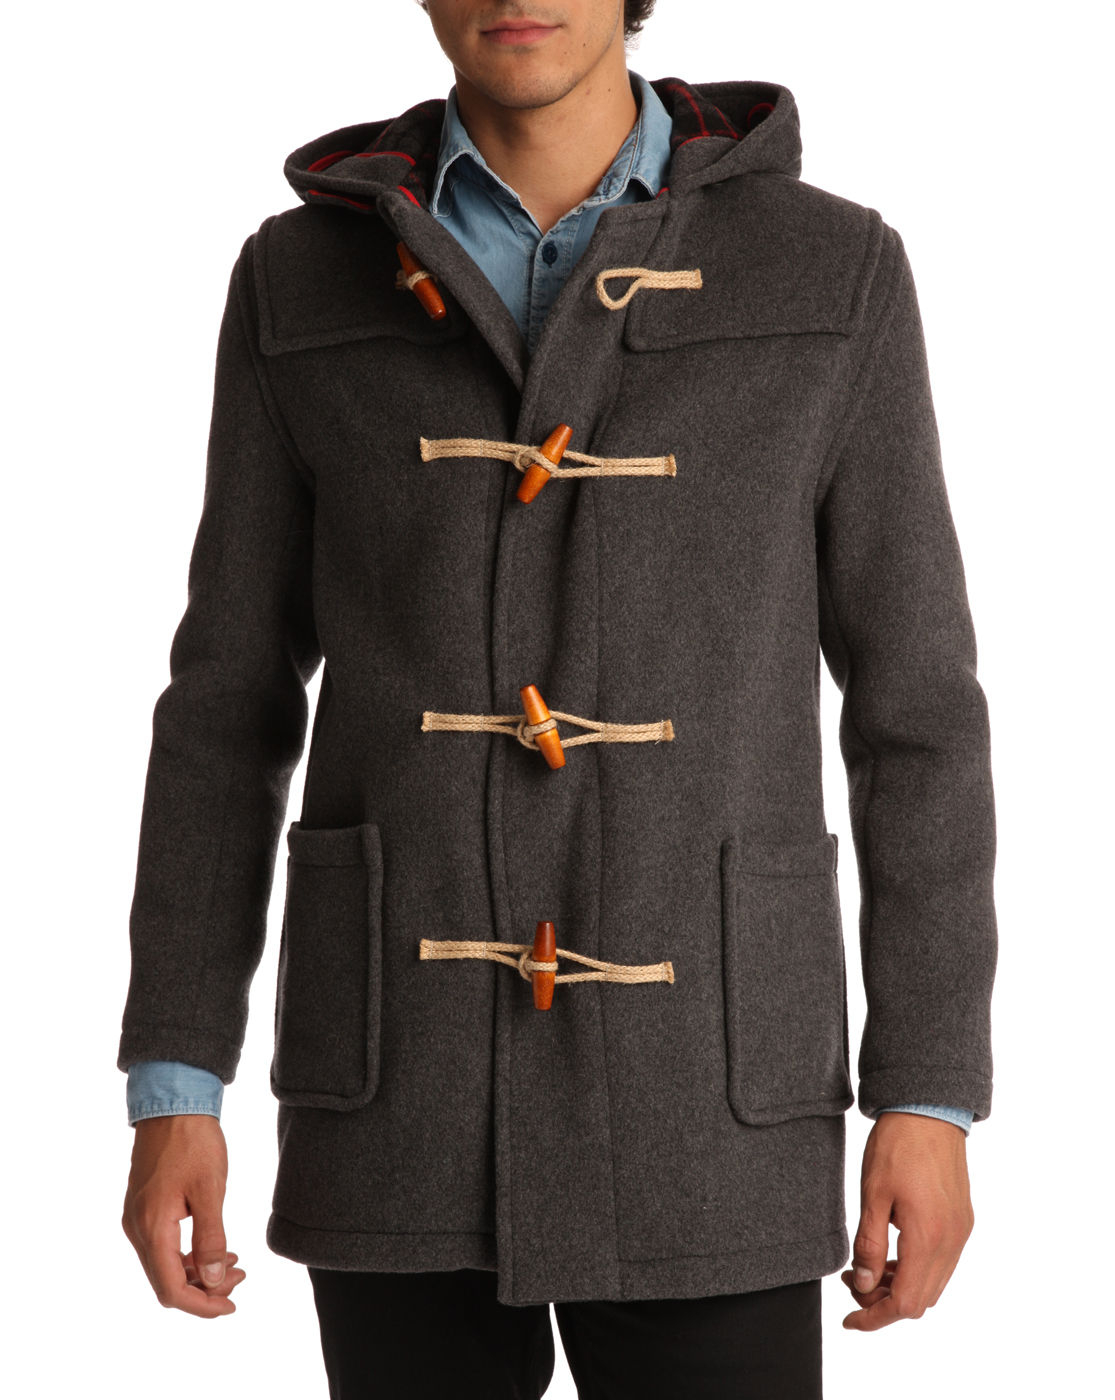 Images of Gloverall Duffle Coat - Reikian